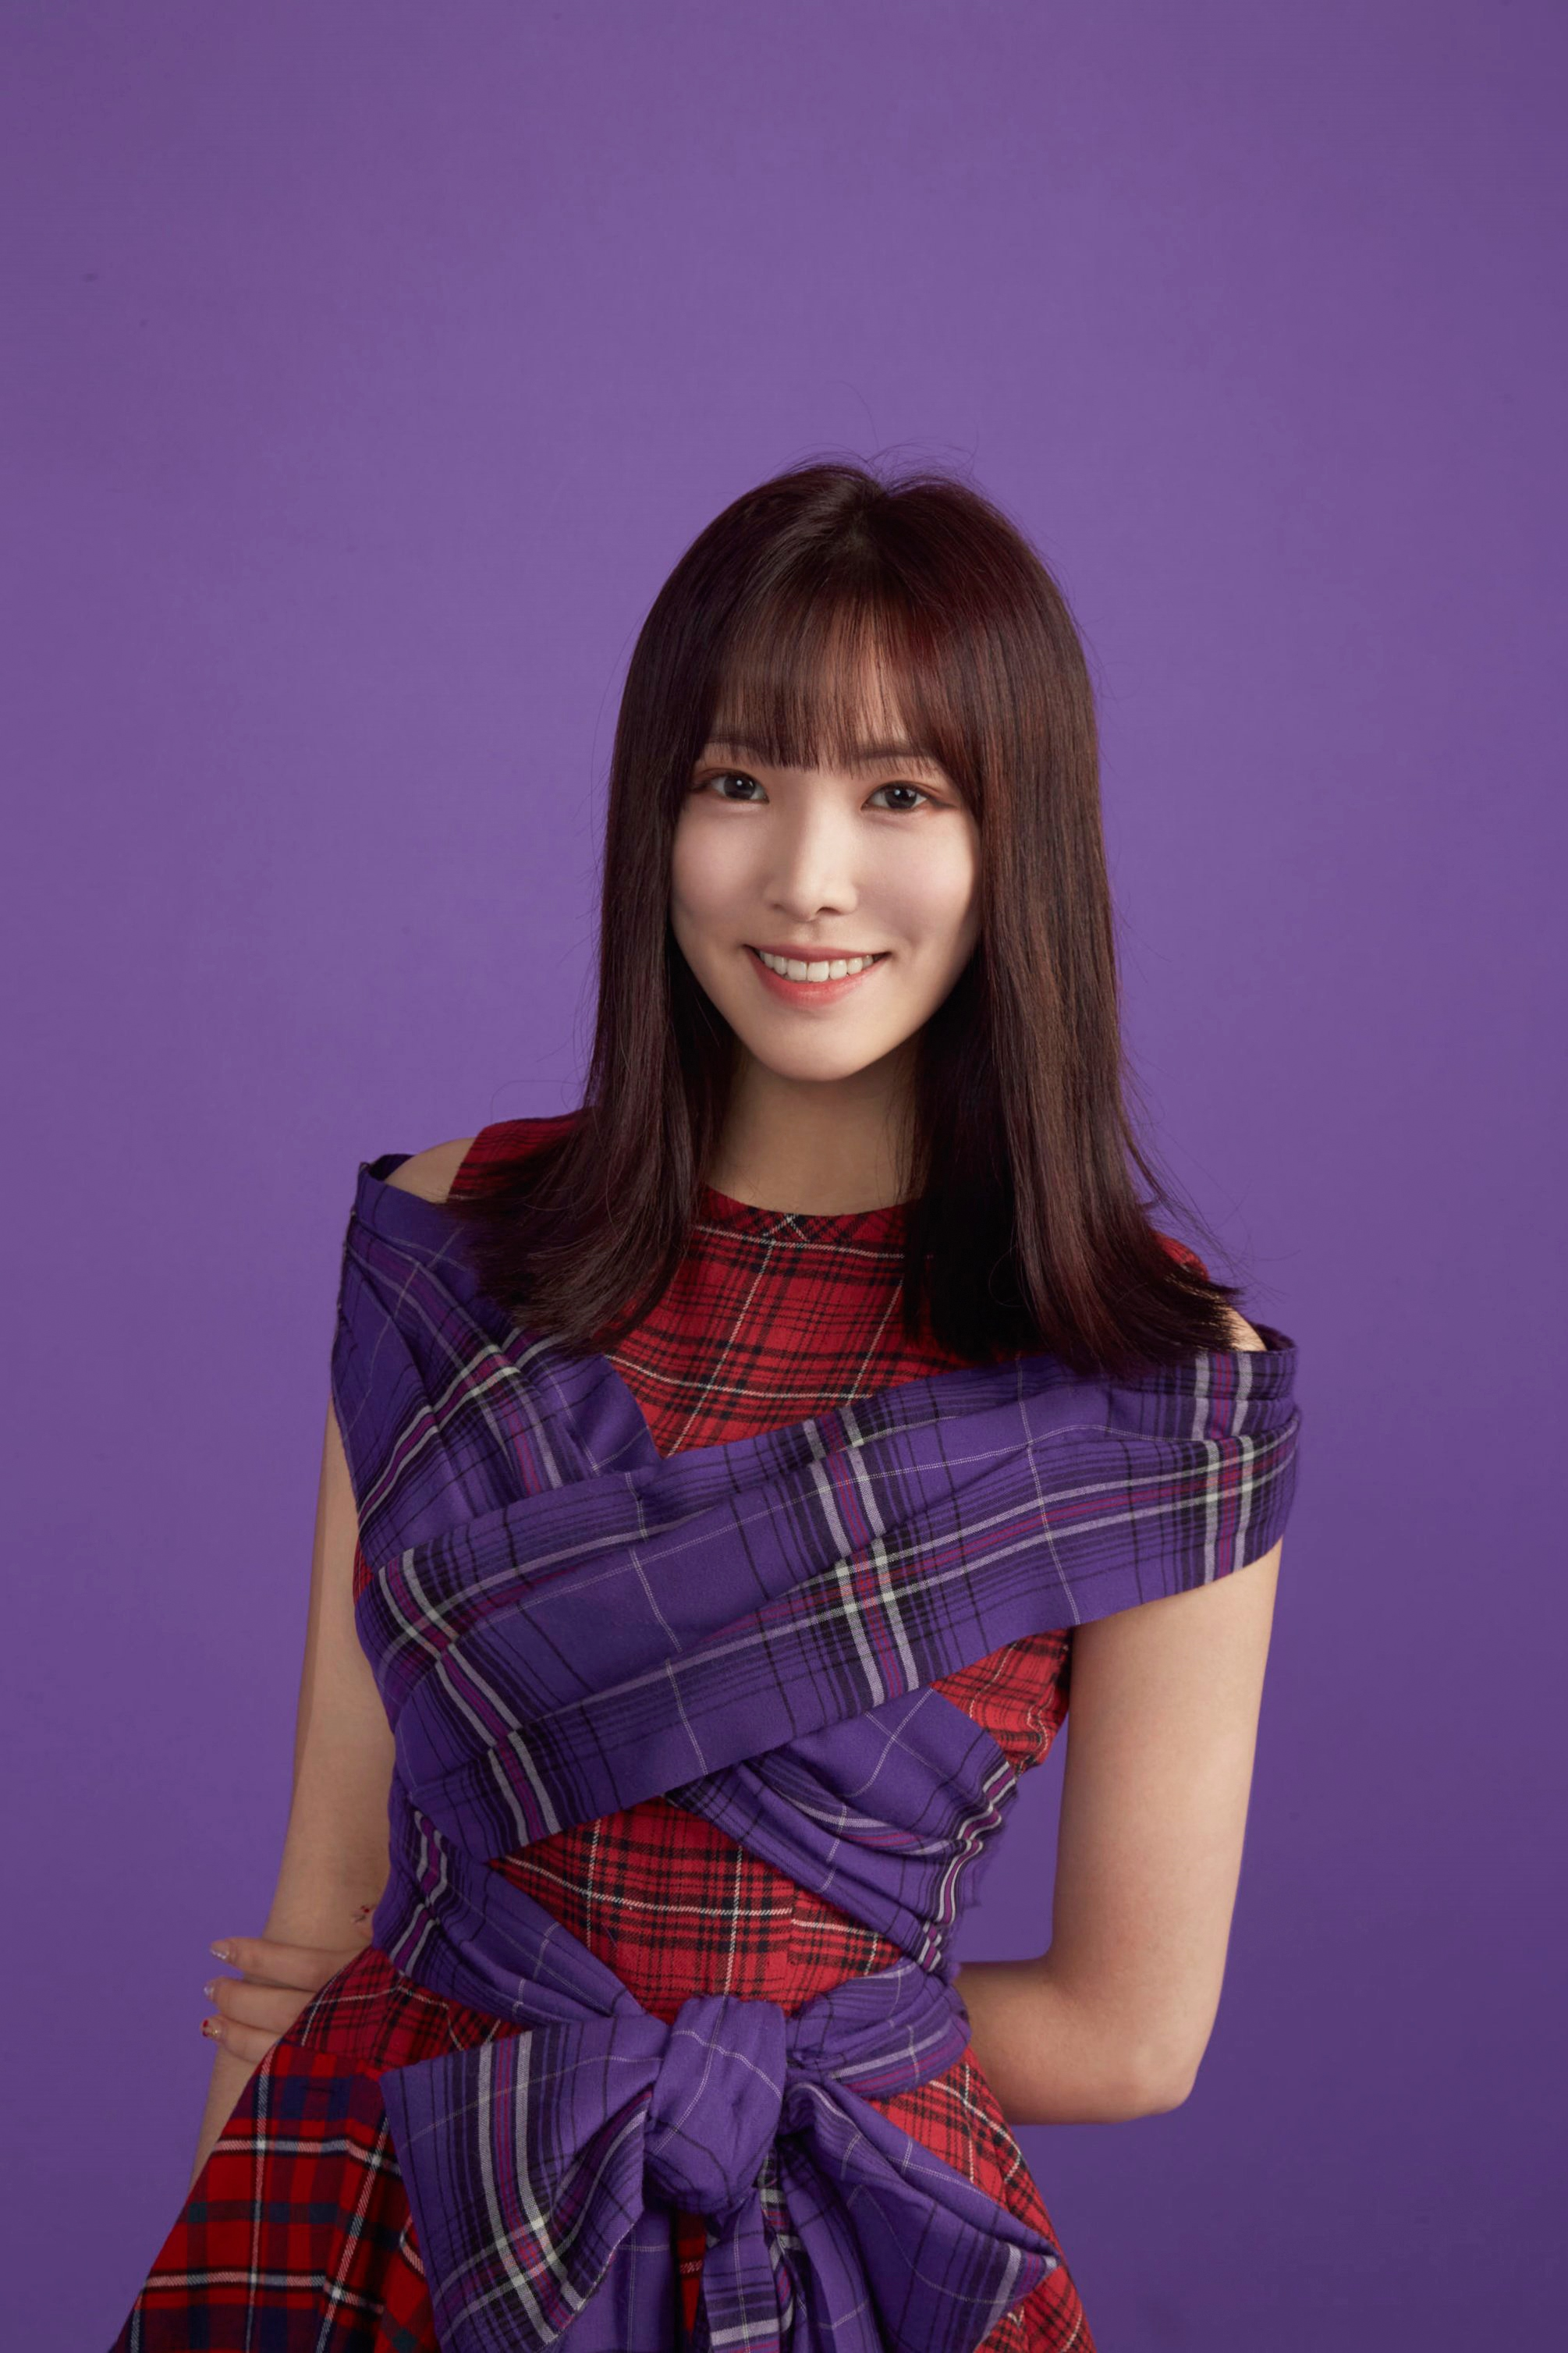 GFRIENDs Yuju Unable To Attend ISAC Filming Due To The